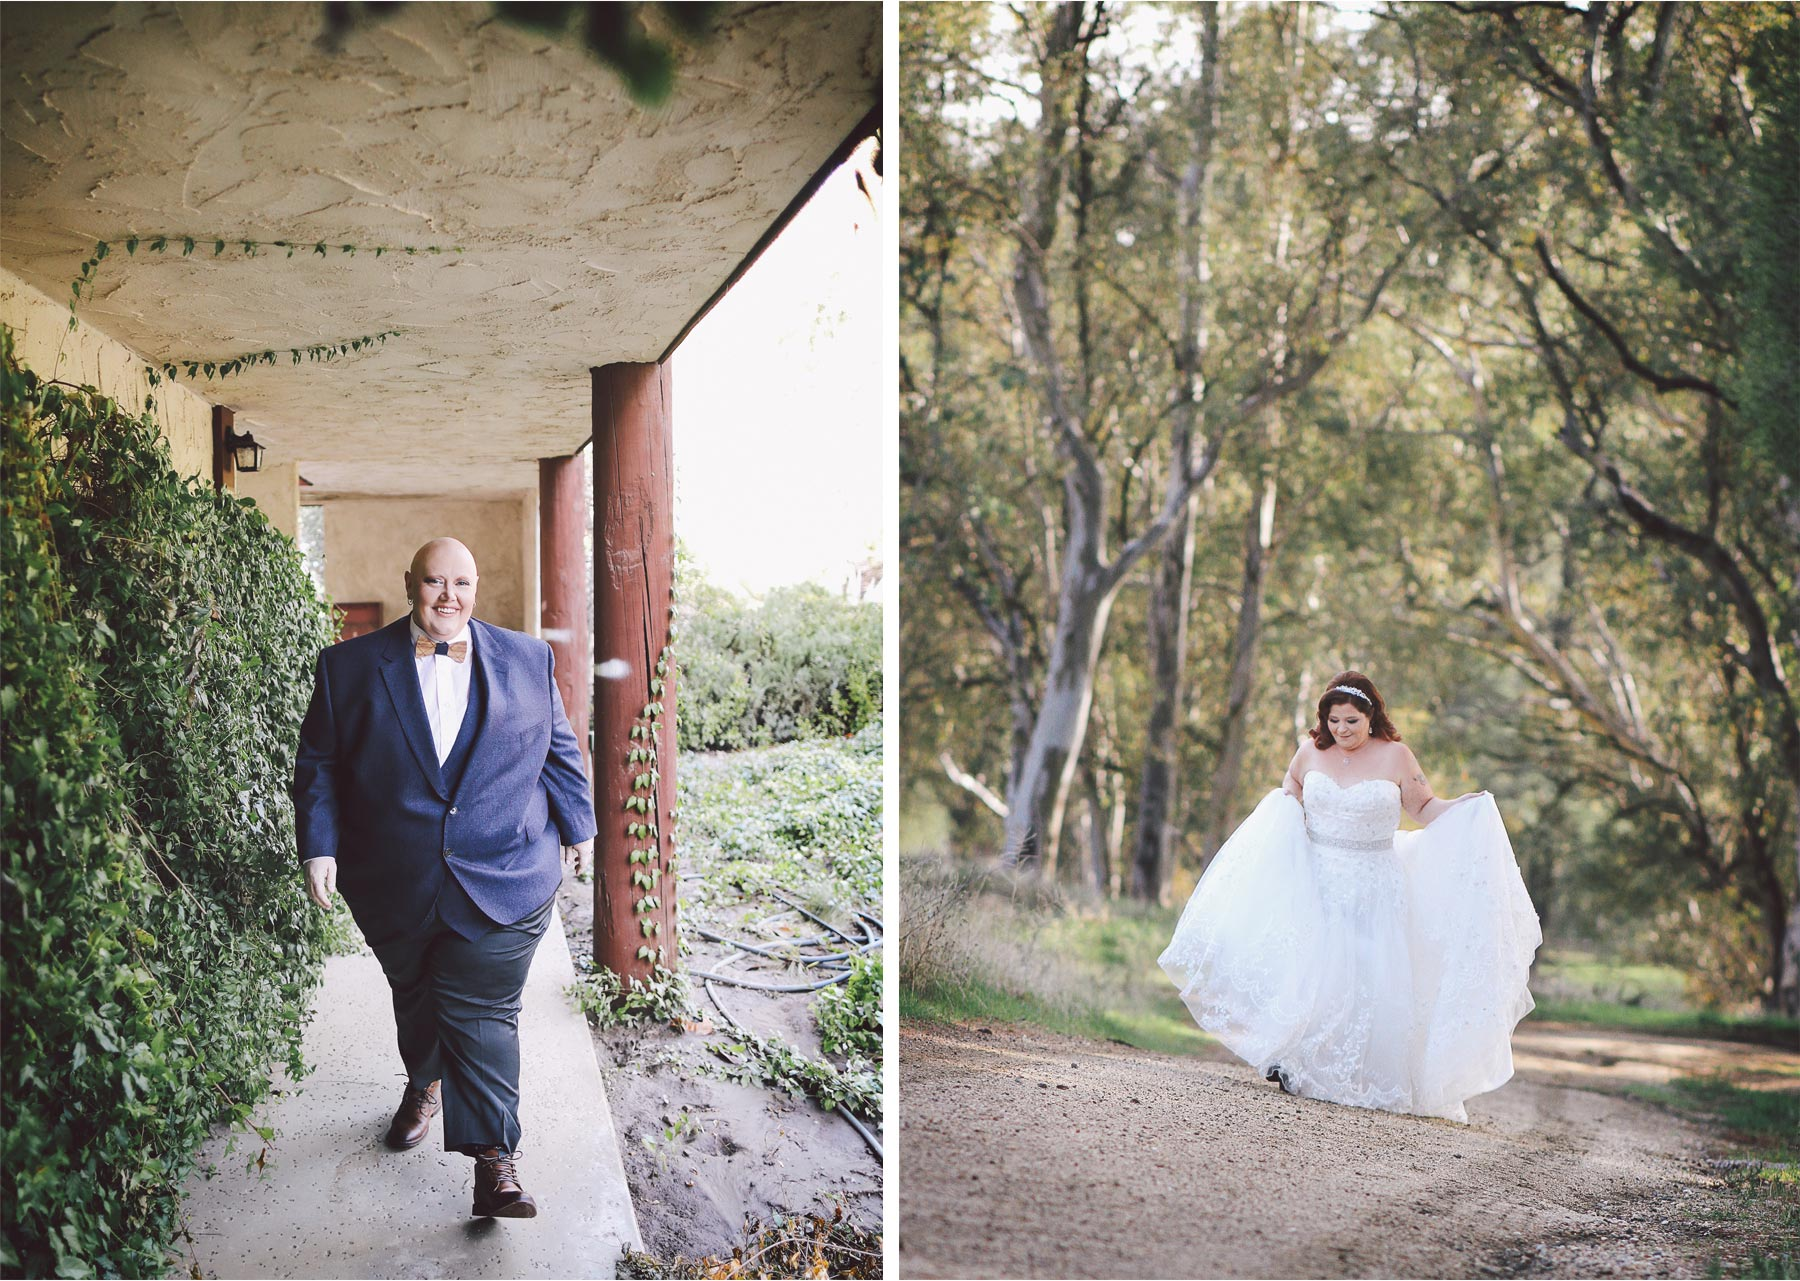 04-Los-Angeles-California-Wedding-Photographer-by-Vick-Photography-Highland-Springs-Ranch-LGBT-Bride-First-Look-Rebecca-and-Terri.jpg